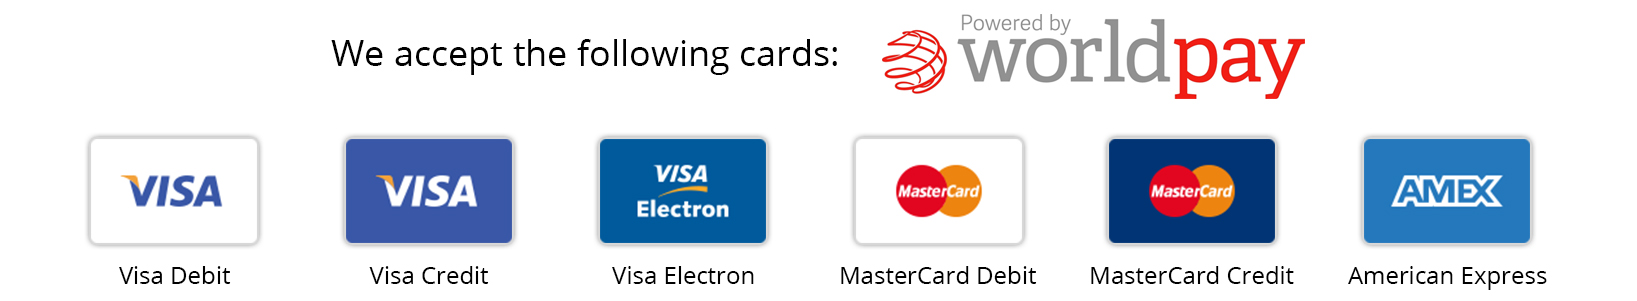 WorldPay Credit Cards